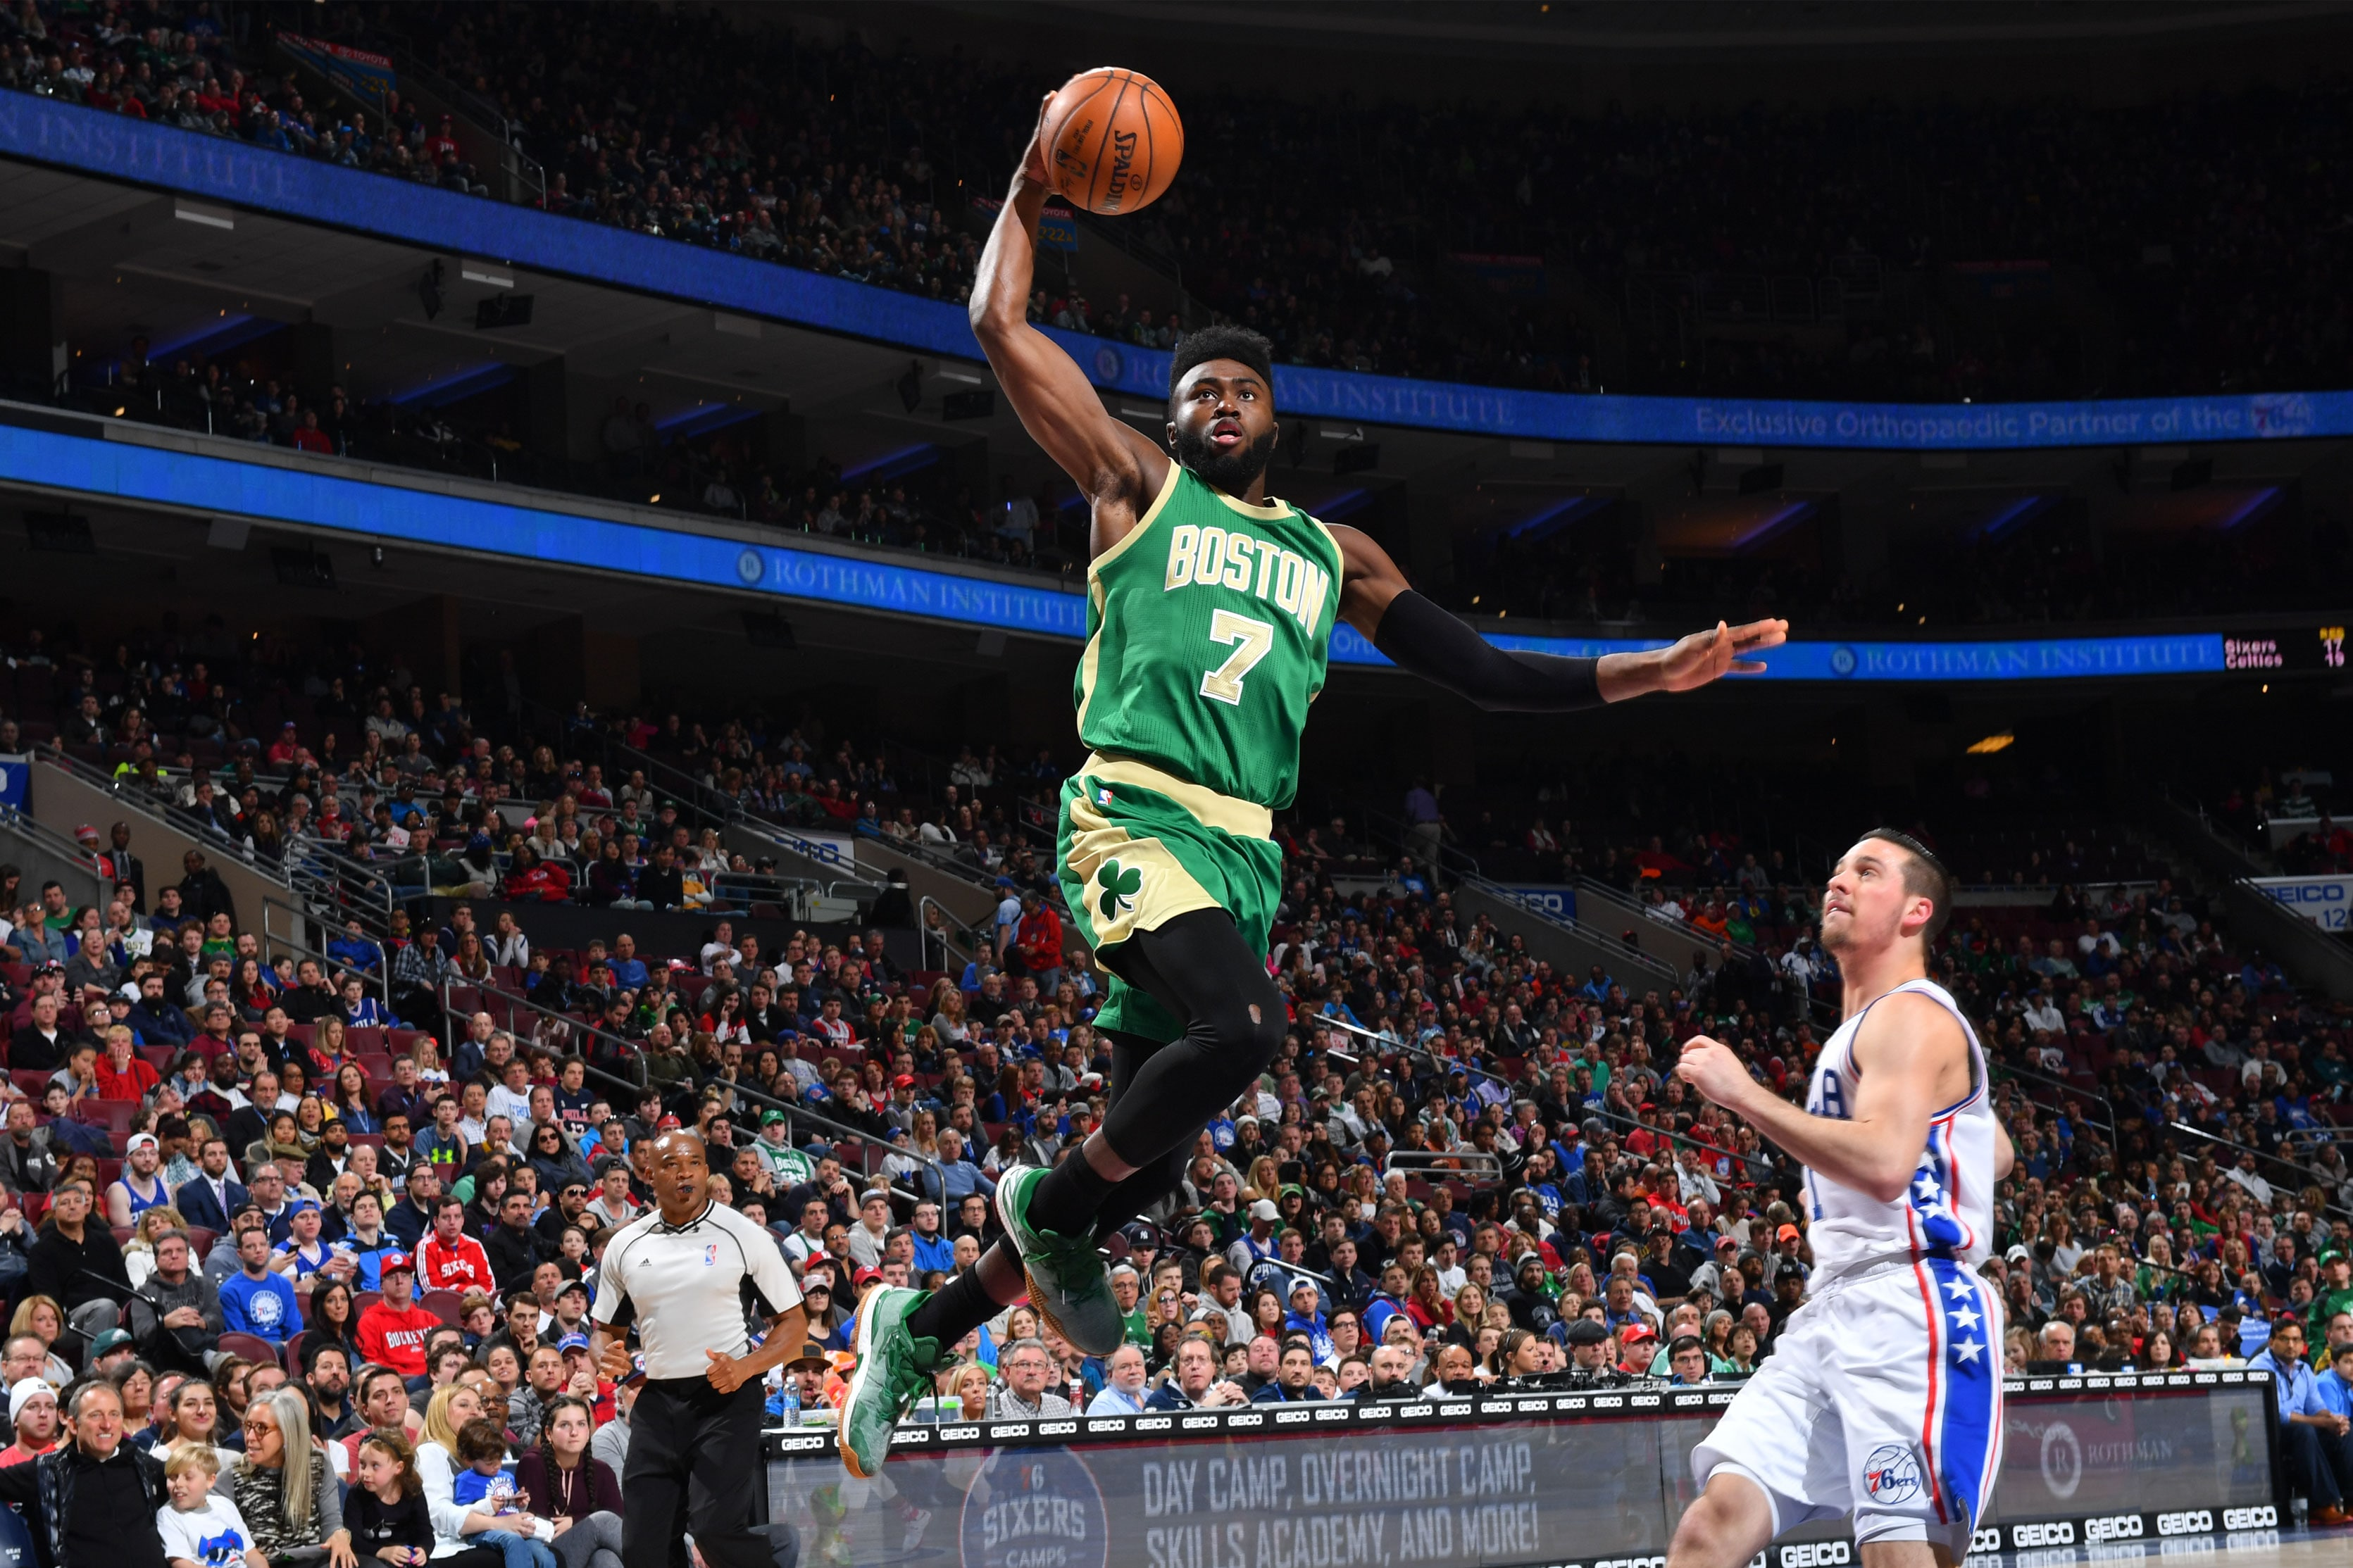 Boston Celtic Standings >> Jaylen Brown Named to All-Rookie Second Team | Boston Celtics